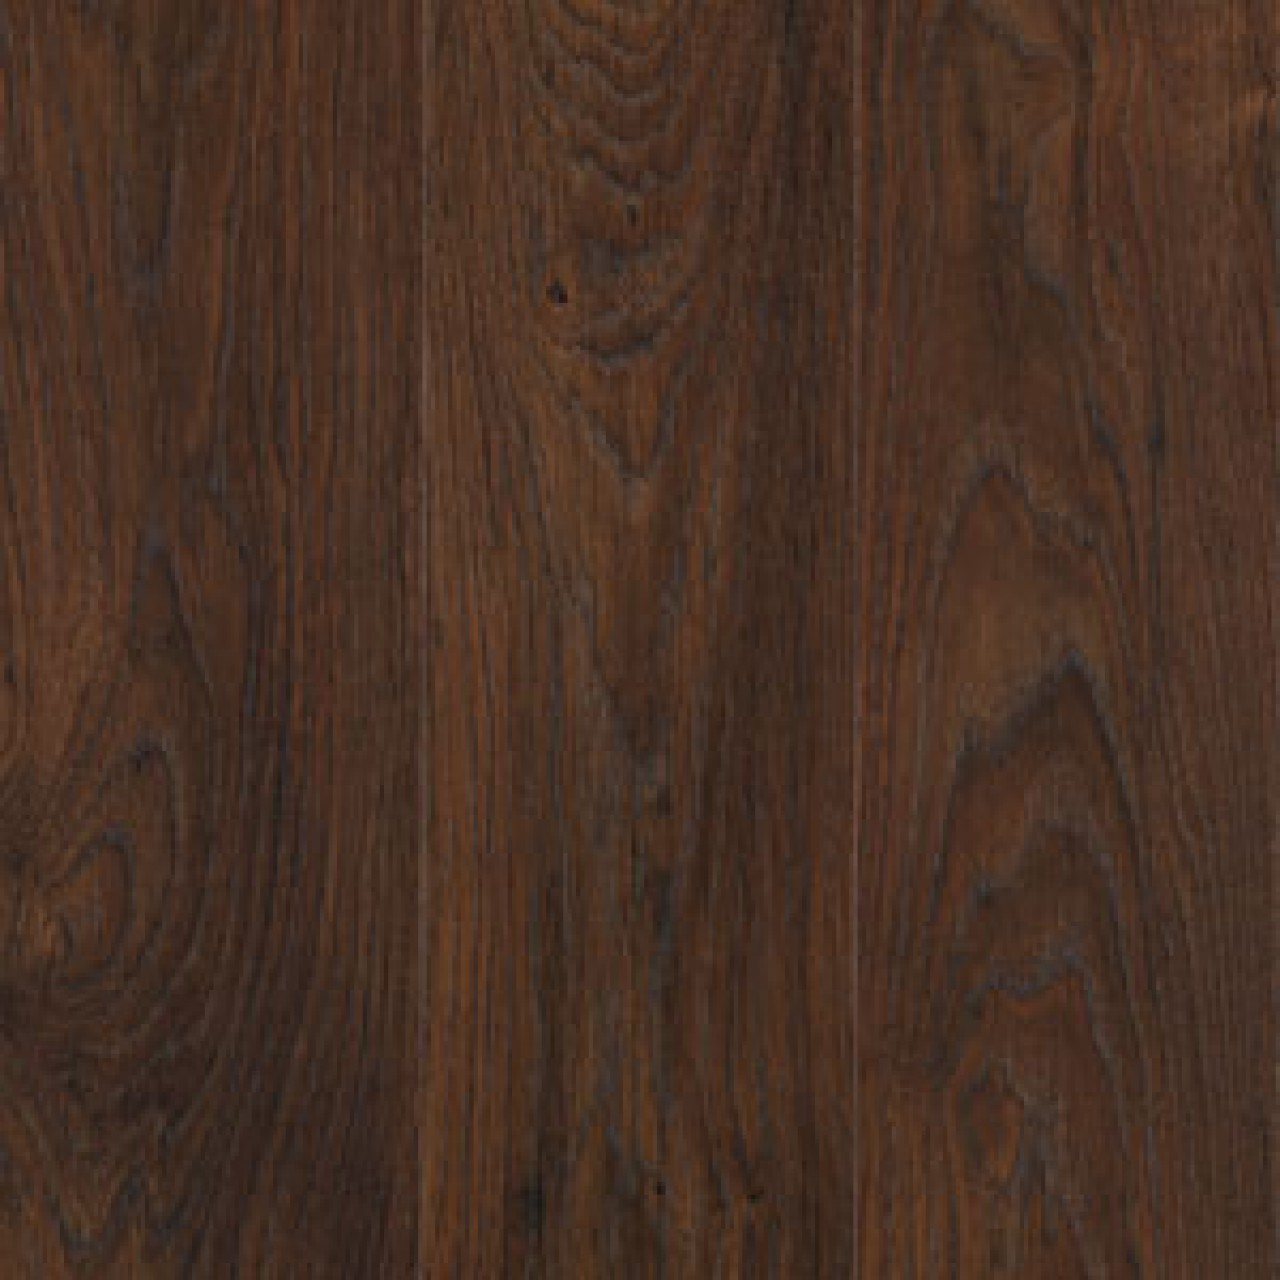 Mohawk Laminate Flooring Whats Trending and Why